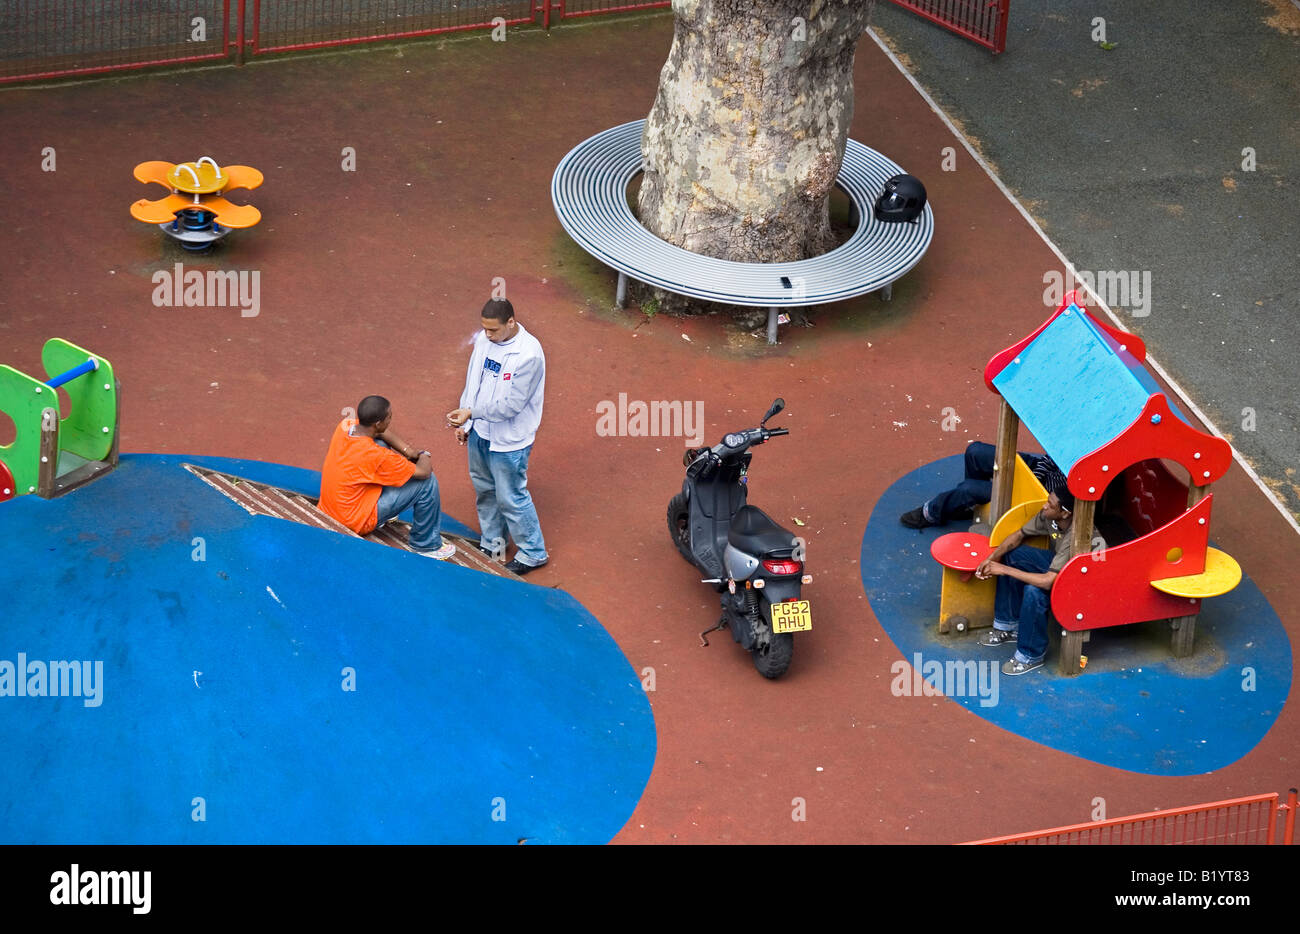 In Britains Playgrounds Bringing In >> Teenagers Hanging Around In Children Playground London